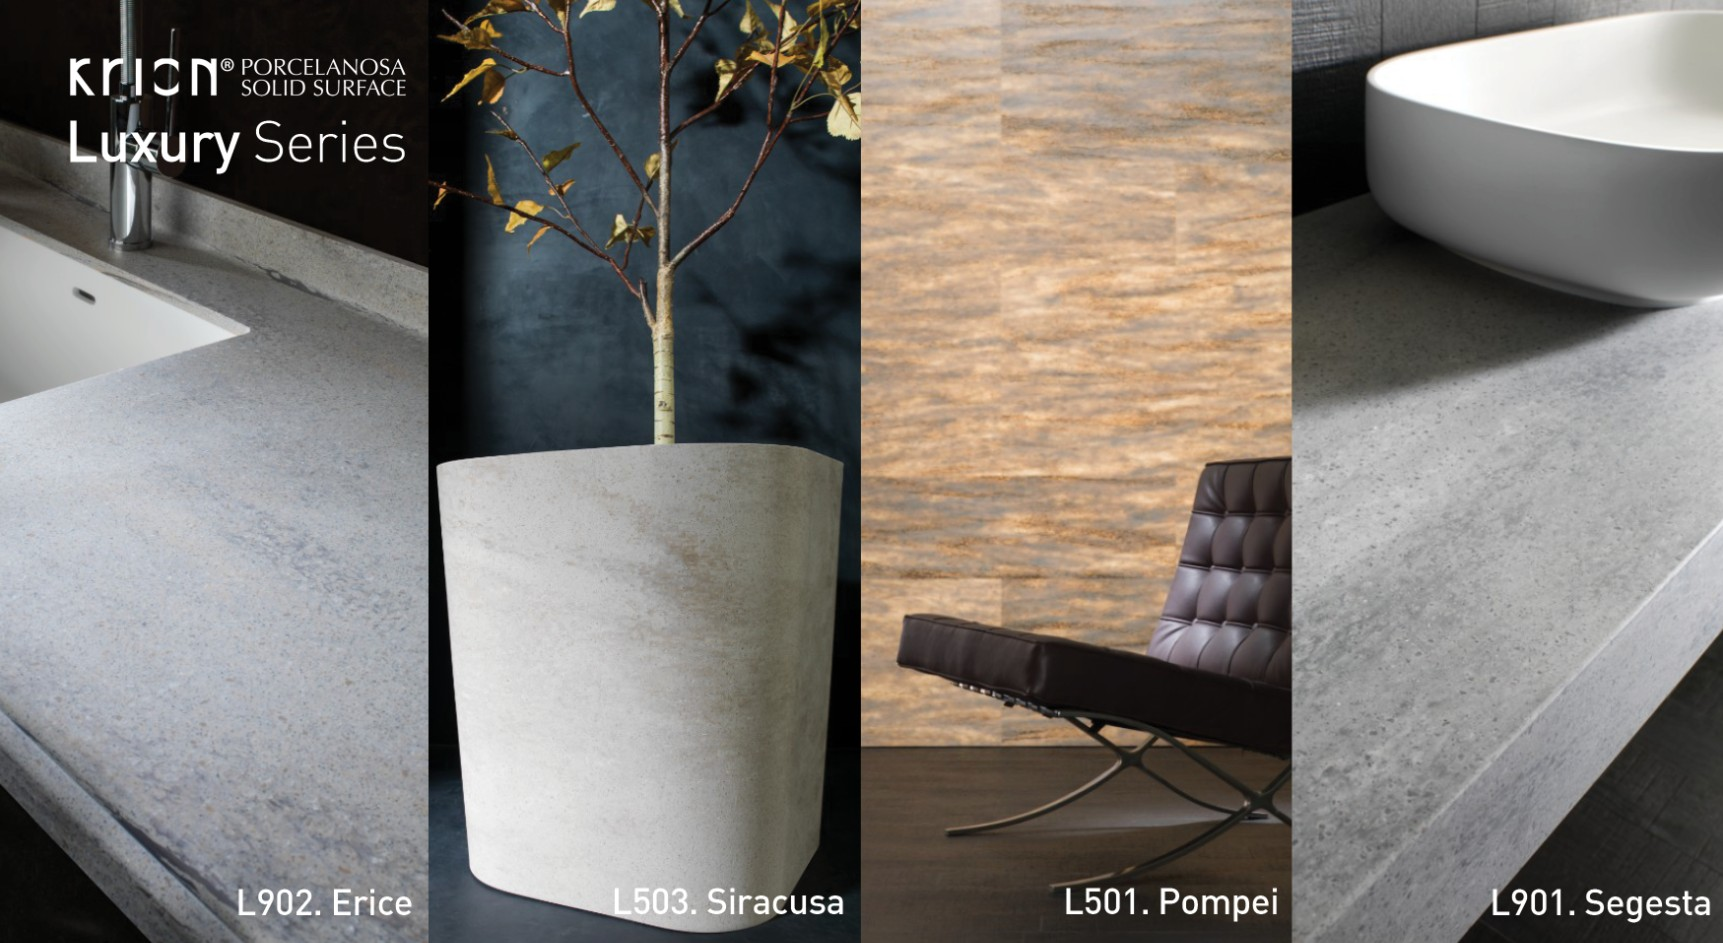 KRION® LUXURY CERSAIE 2014 NEWS